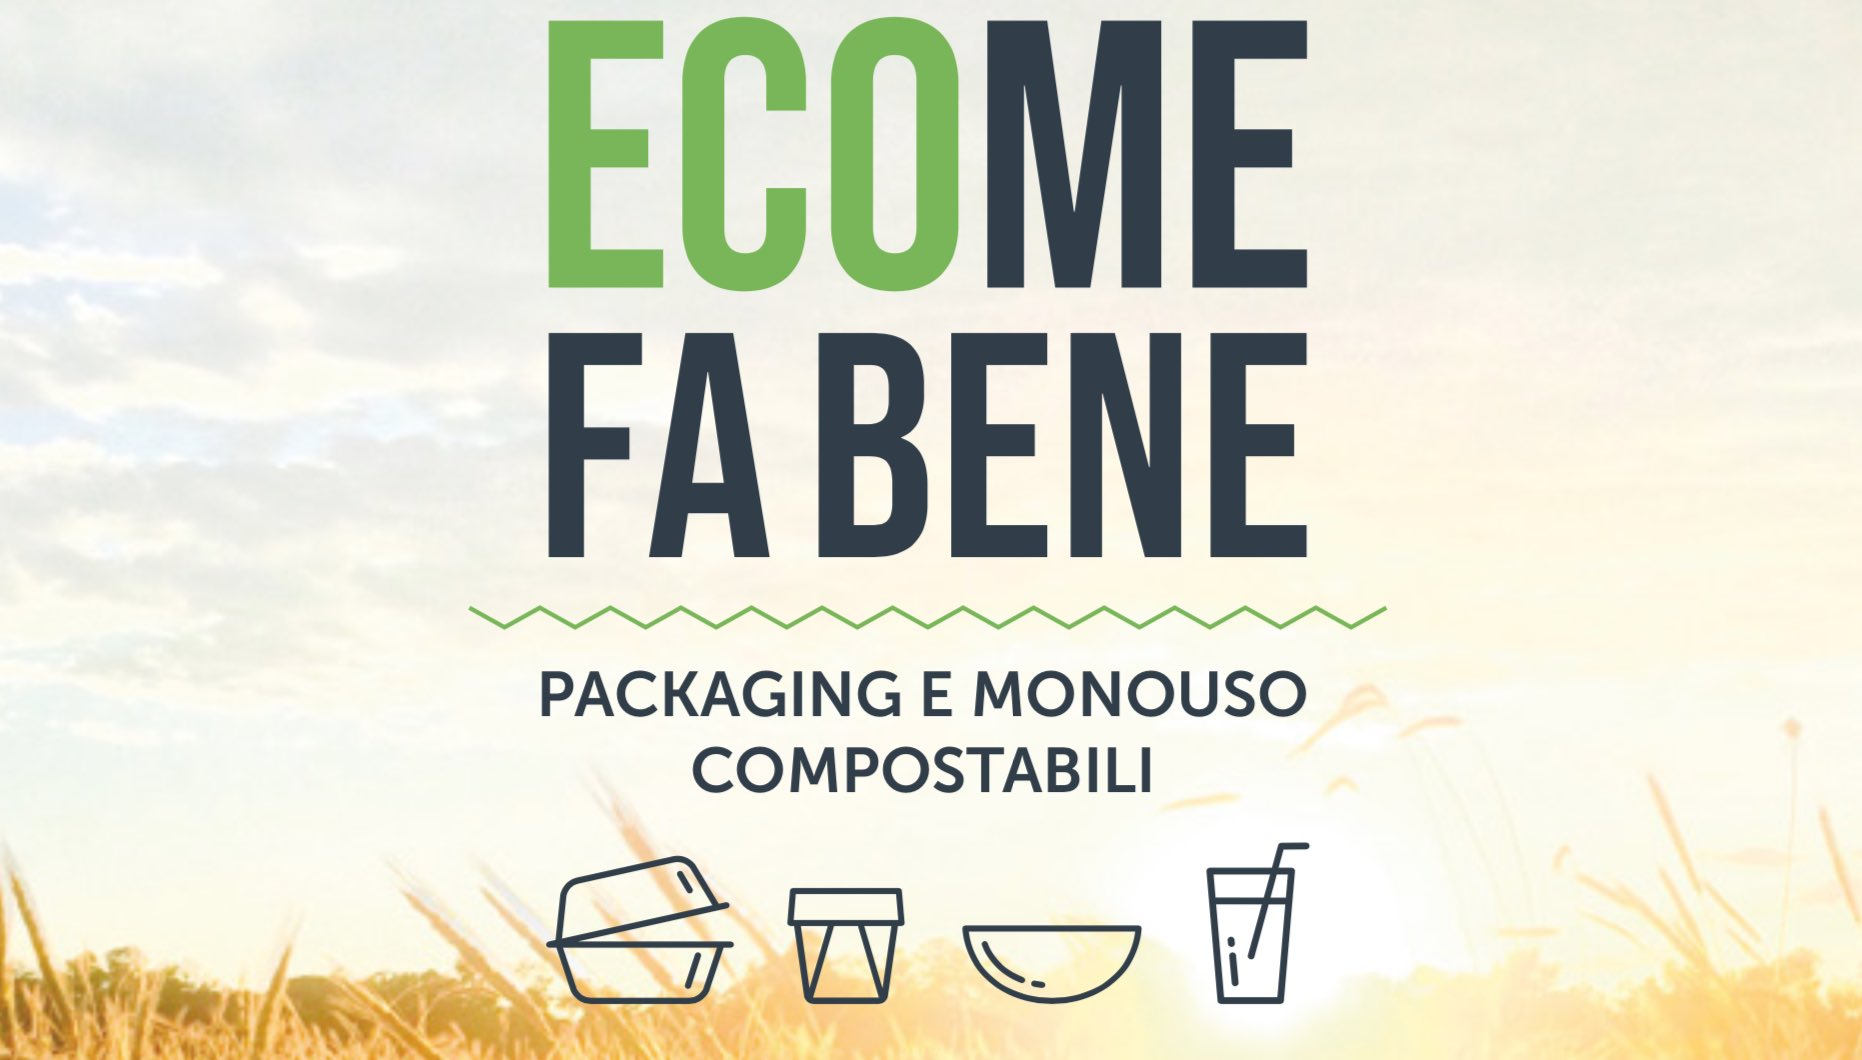 Catalogo food packaging monouso compostabile ecosostenibile